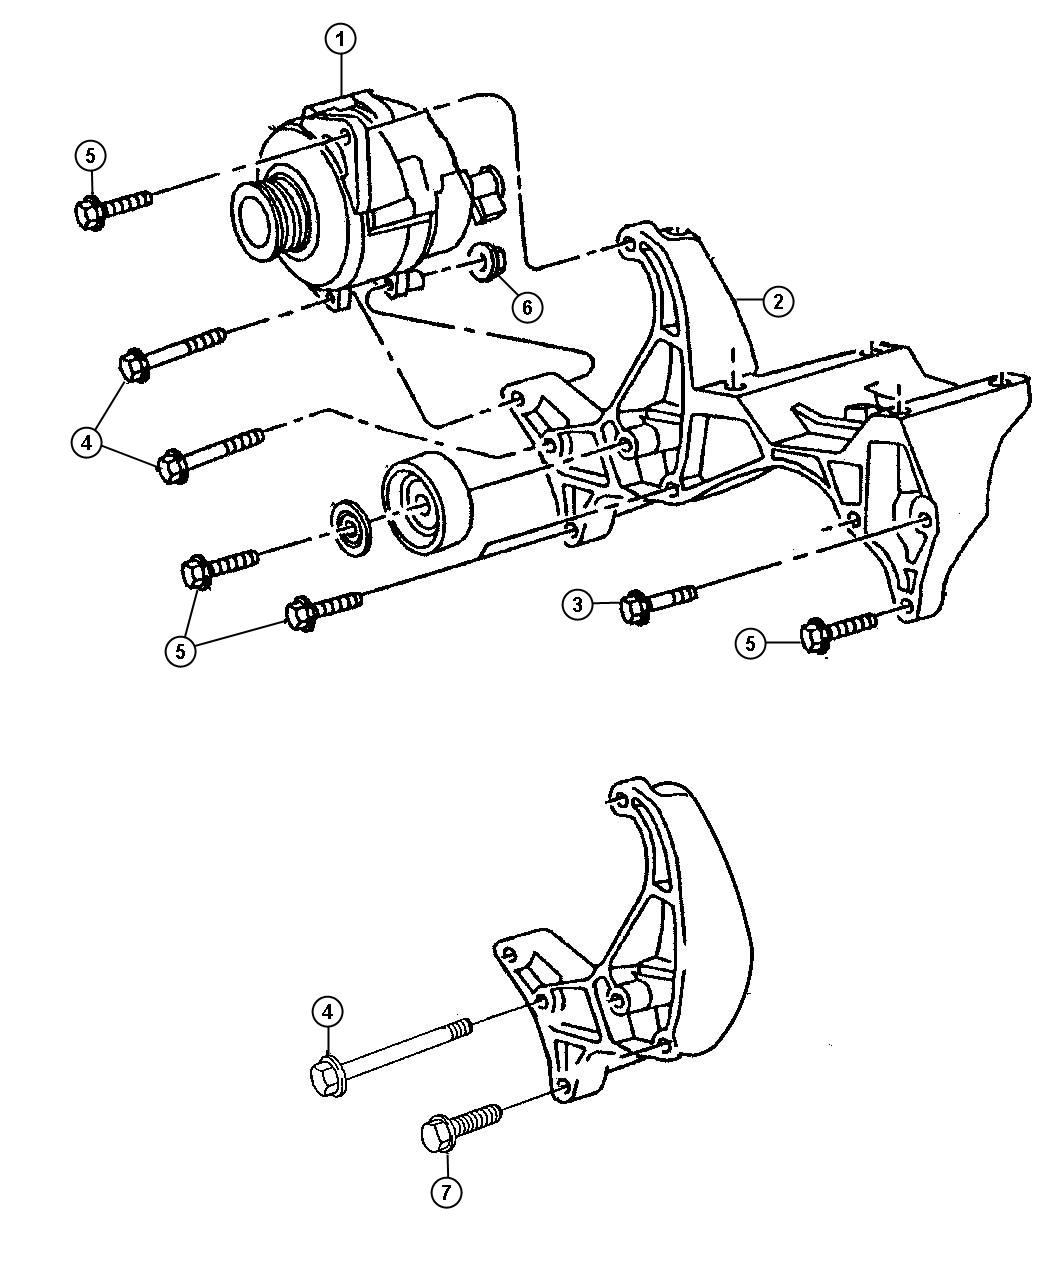 Jeep Cherokee Screw Used For Bolt And Washer Used For